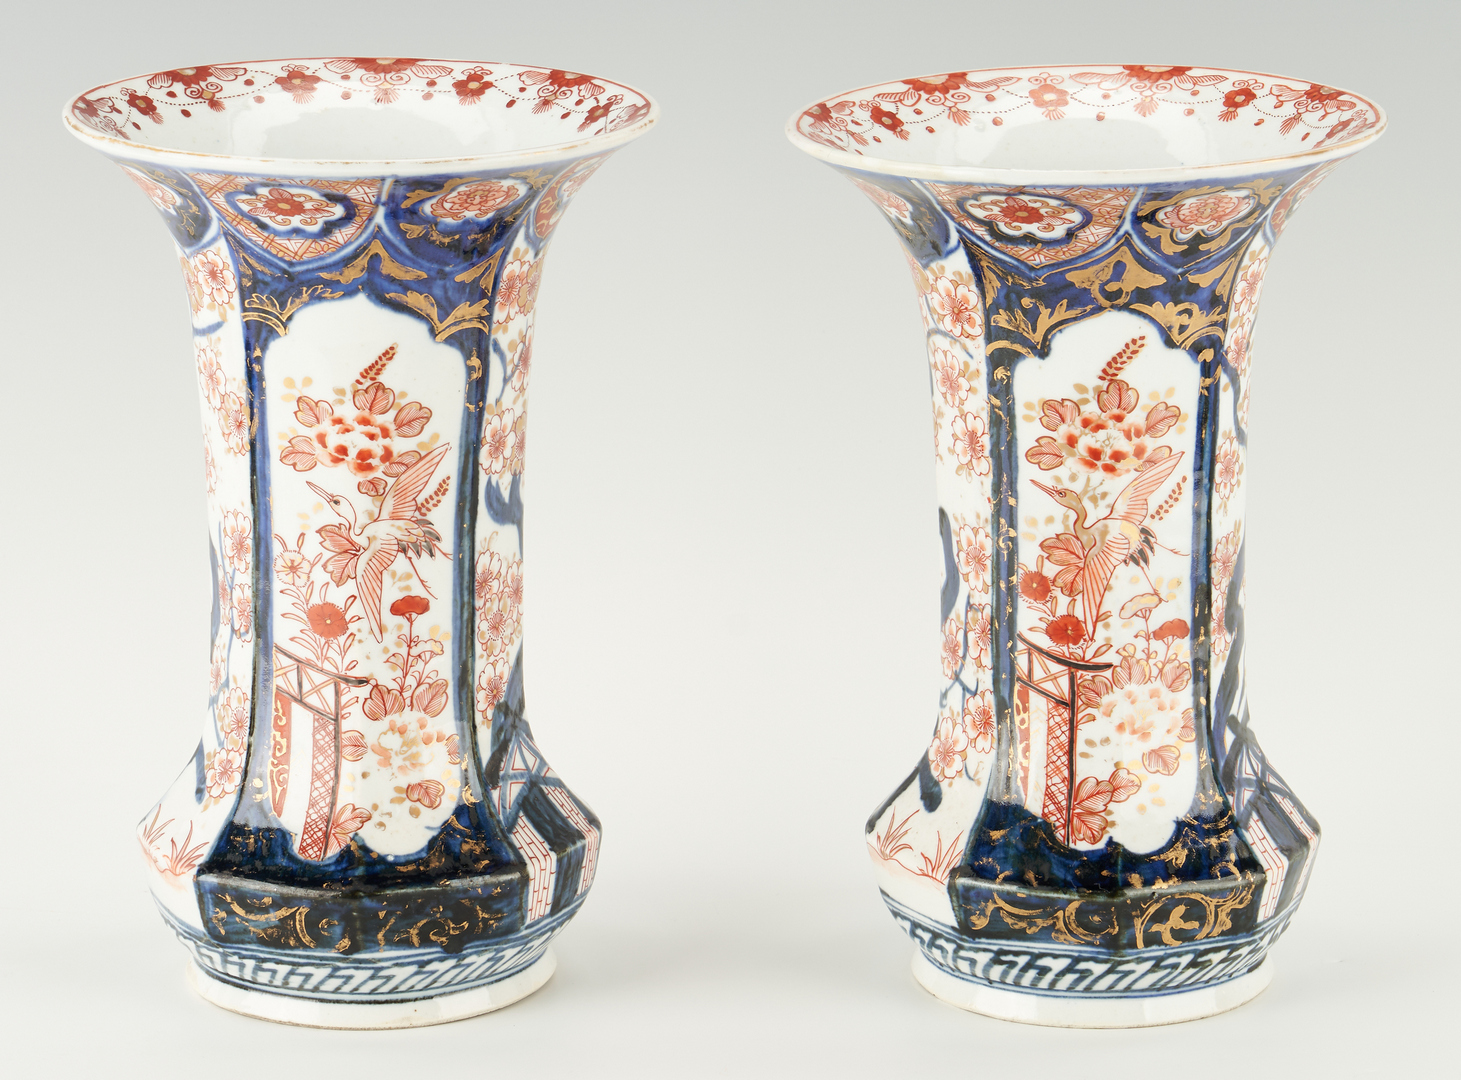 Lot 396: Pair of Imari Porcelain Vases, Boat and Square Dishes